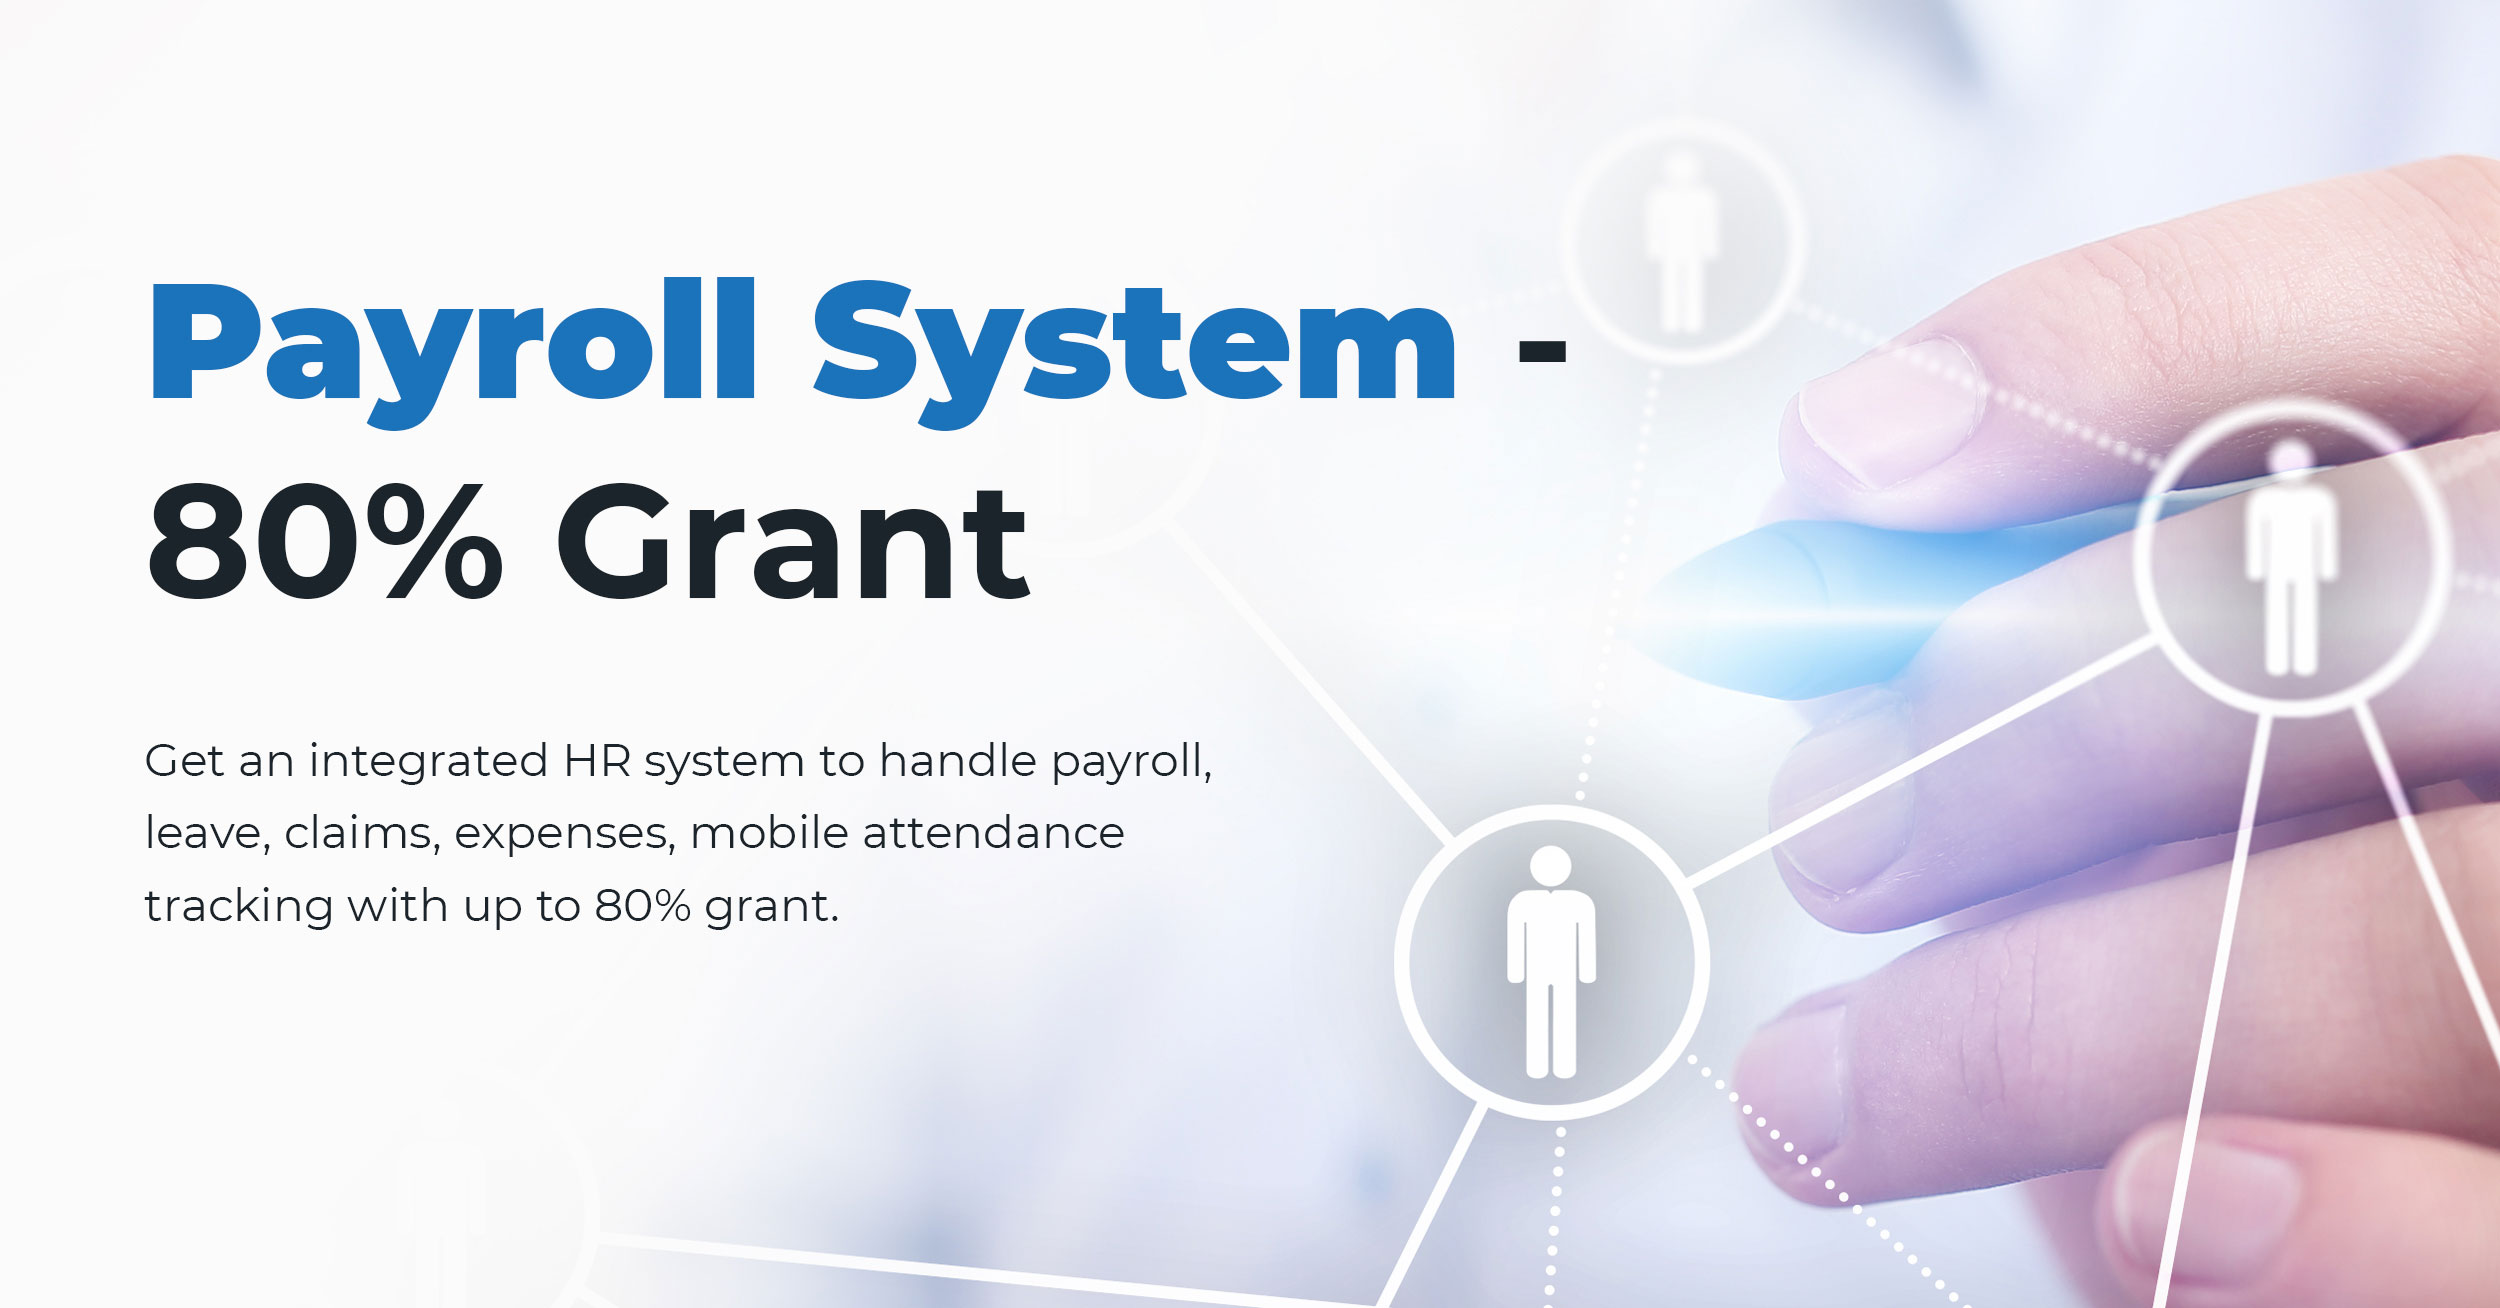 Payroll Software, e-Leave, Mobile Attendance App | PSG Grant 1